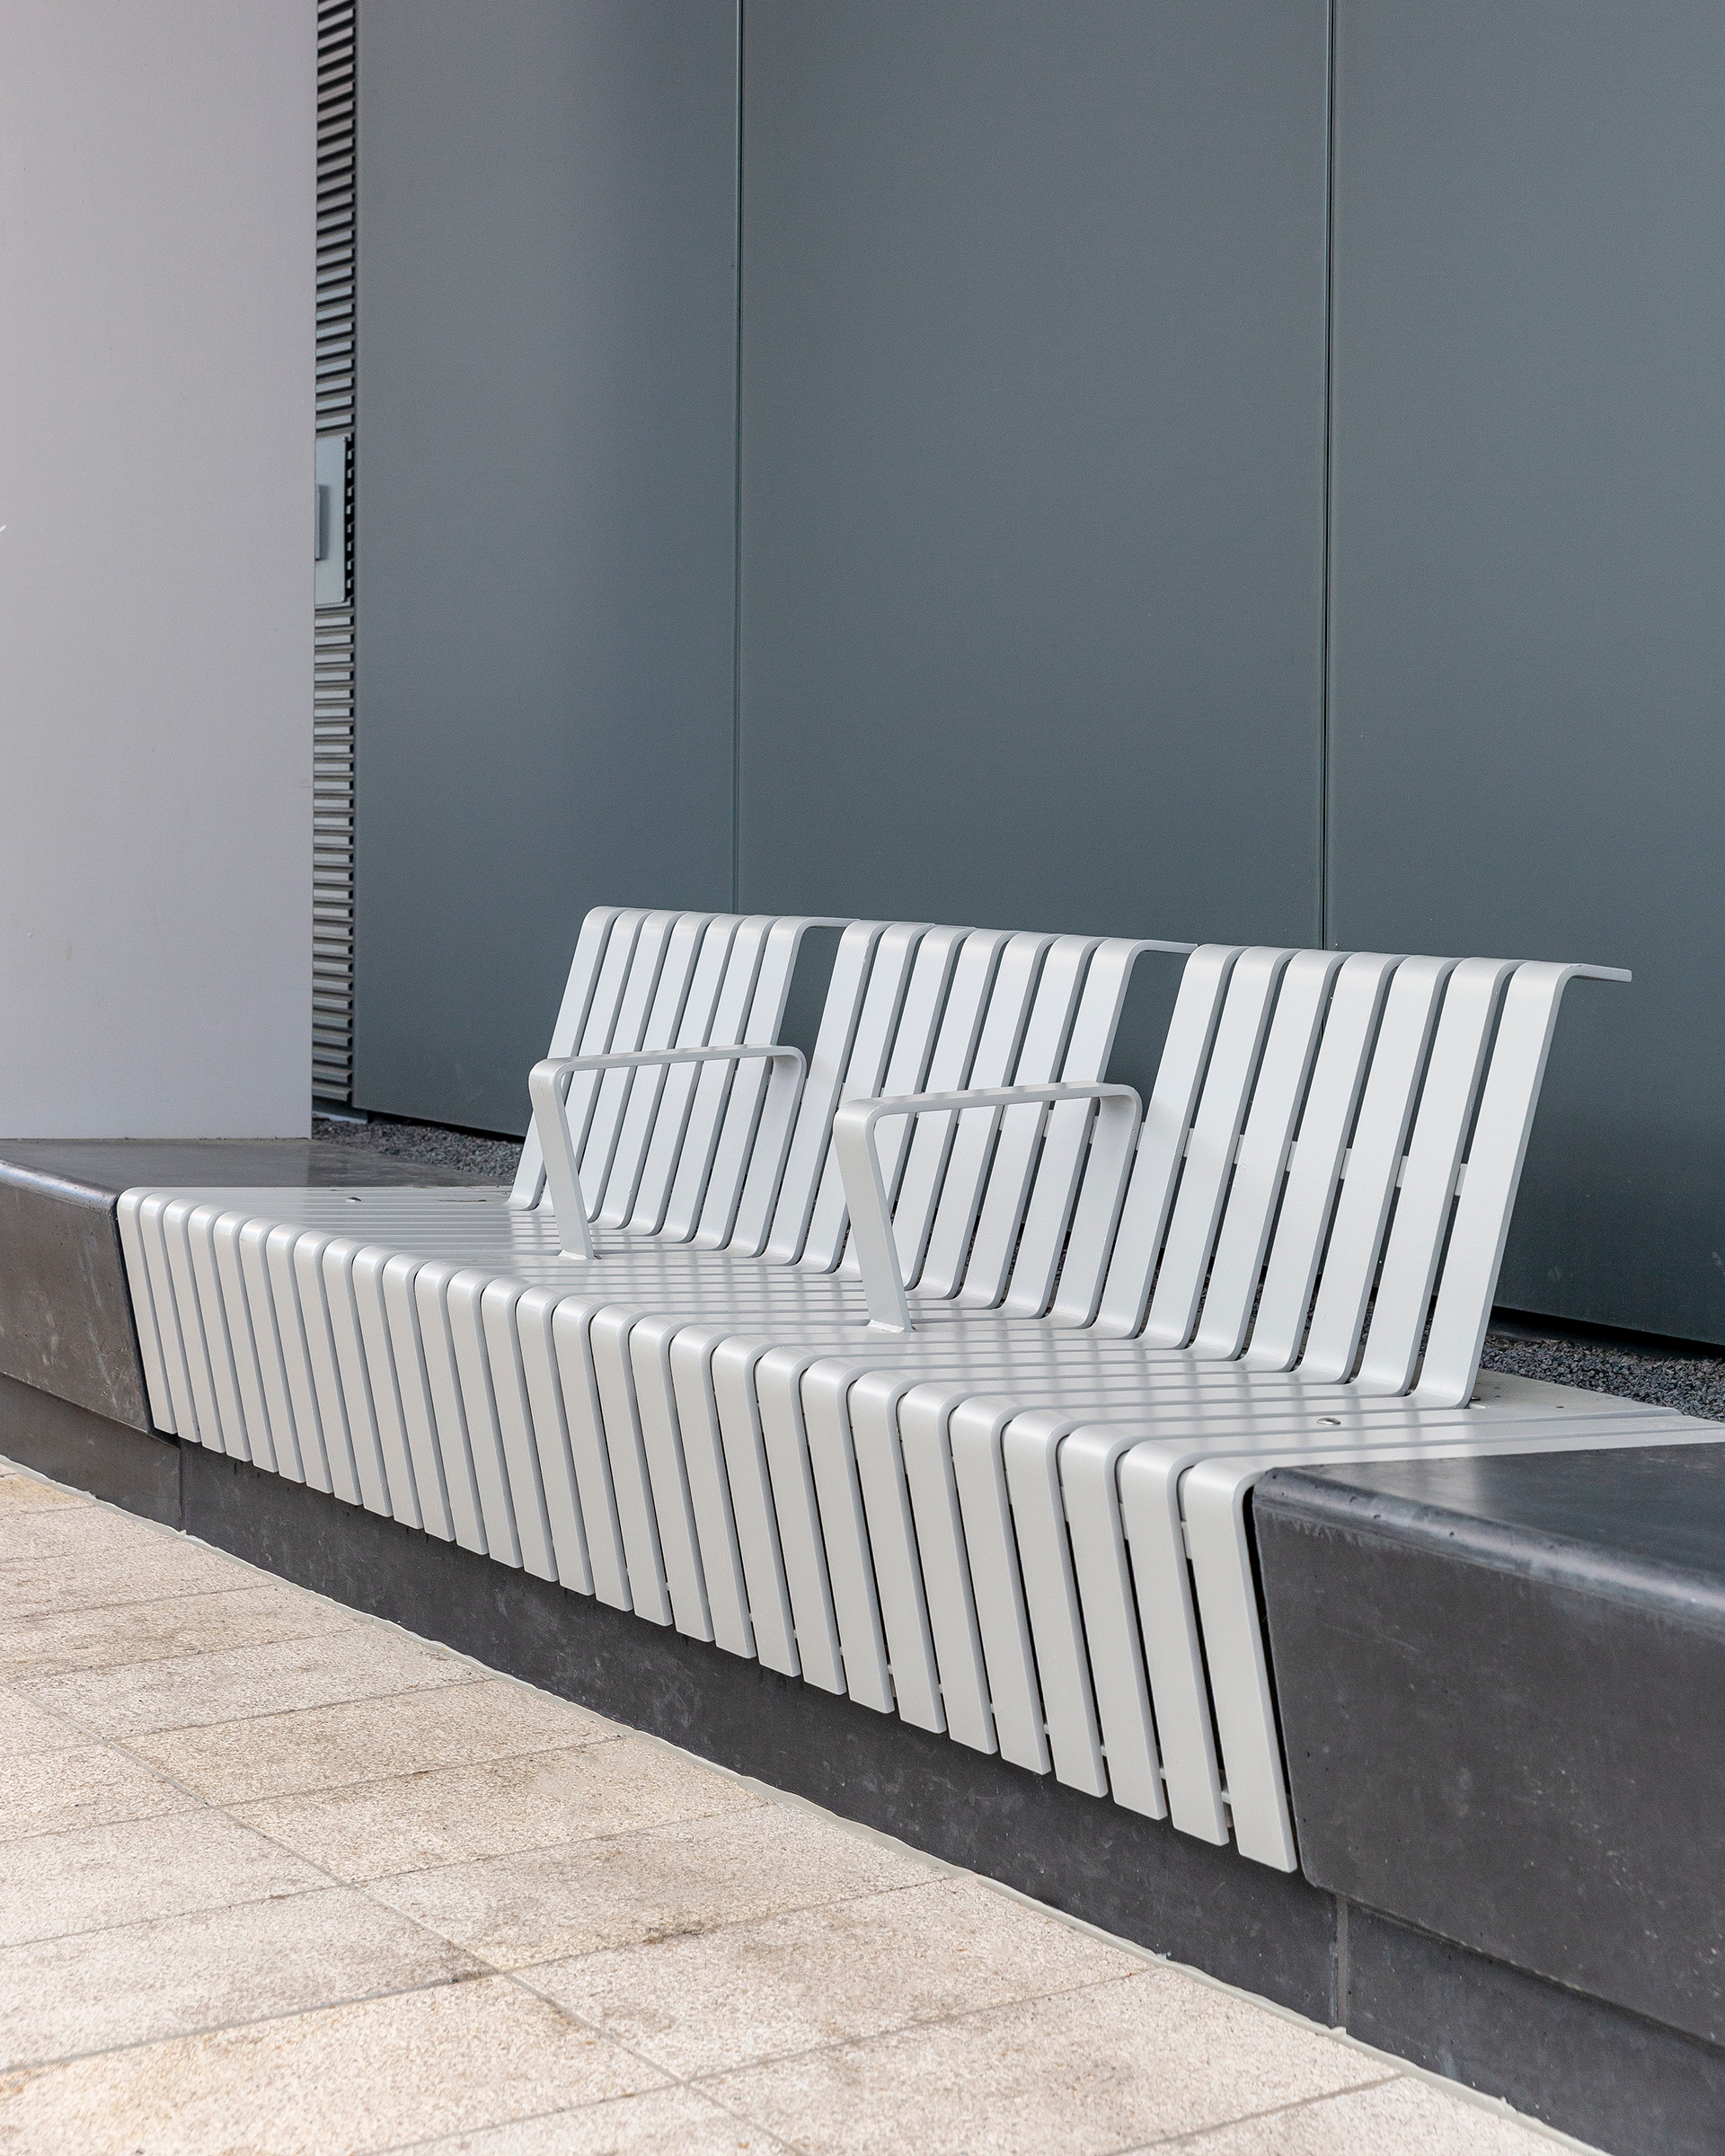 The seating at the bus station consists of black pigmented concrete containing a number of seats executed in strip steel with integrated heating | Tilburg Bus Station| Cepezed| STIR